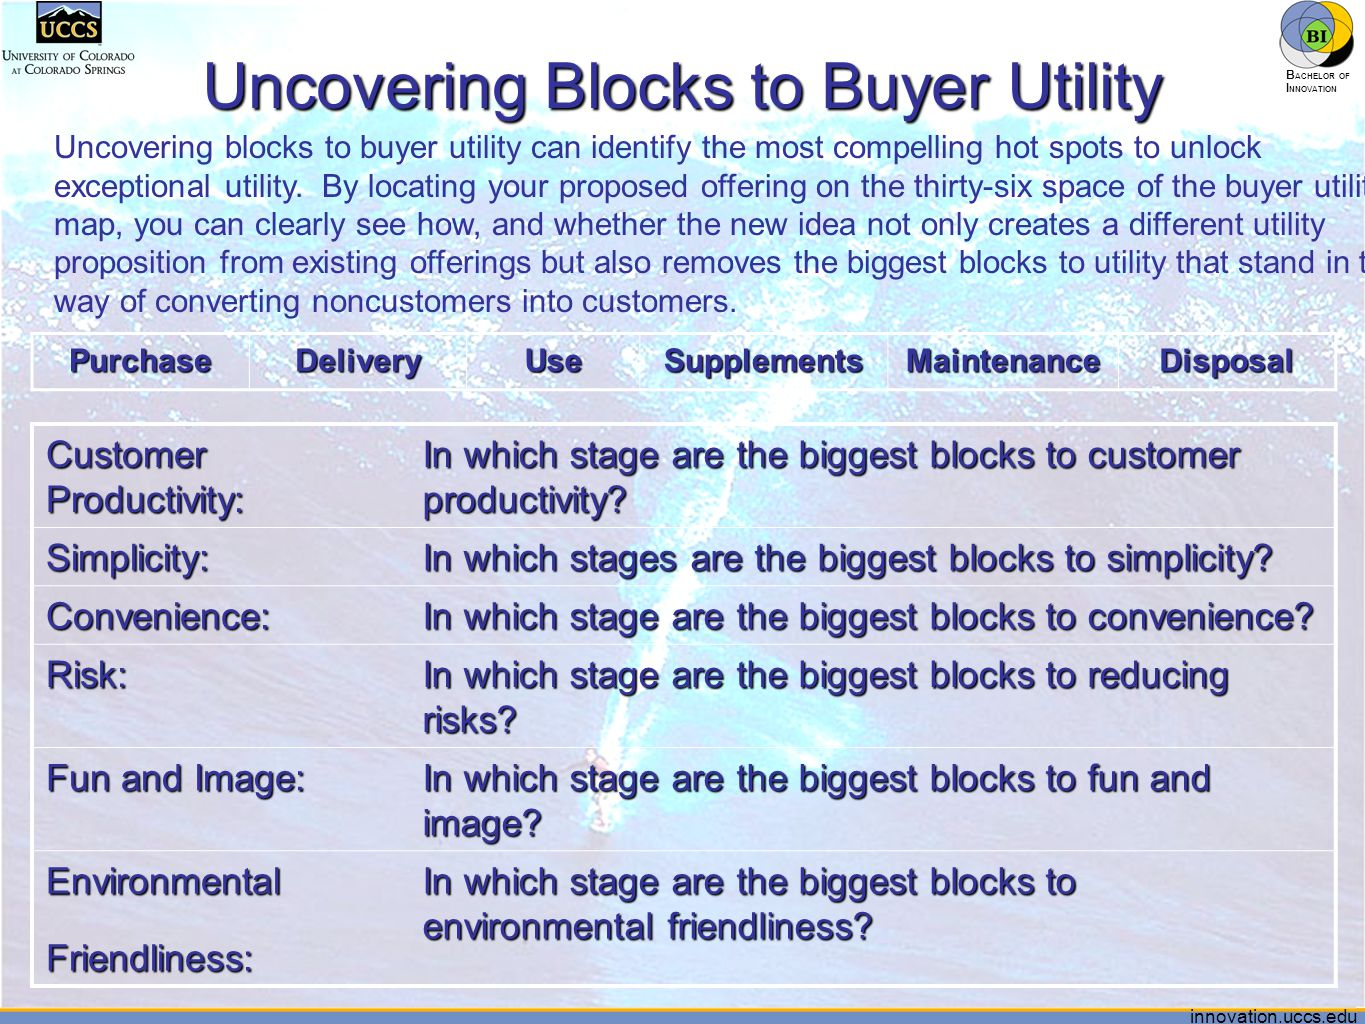 innovation.uccs.edu B ACHELOR OF I NNOVATION ™ Uncovering Blocks to Buyer Utility Uncovering blocks to buyer utility can identify the most compelling